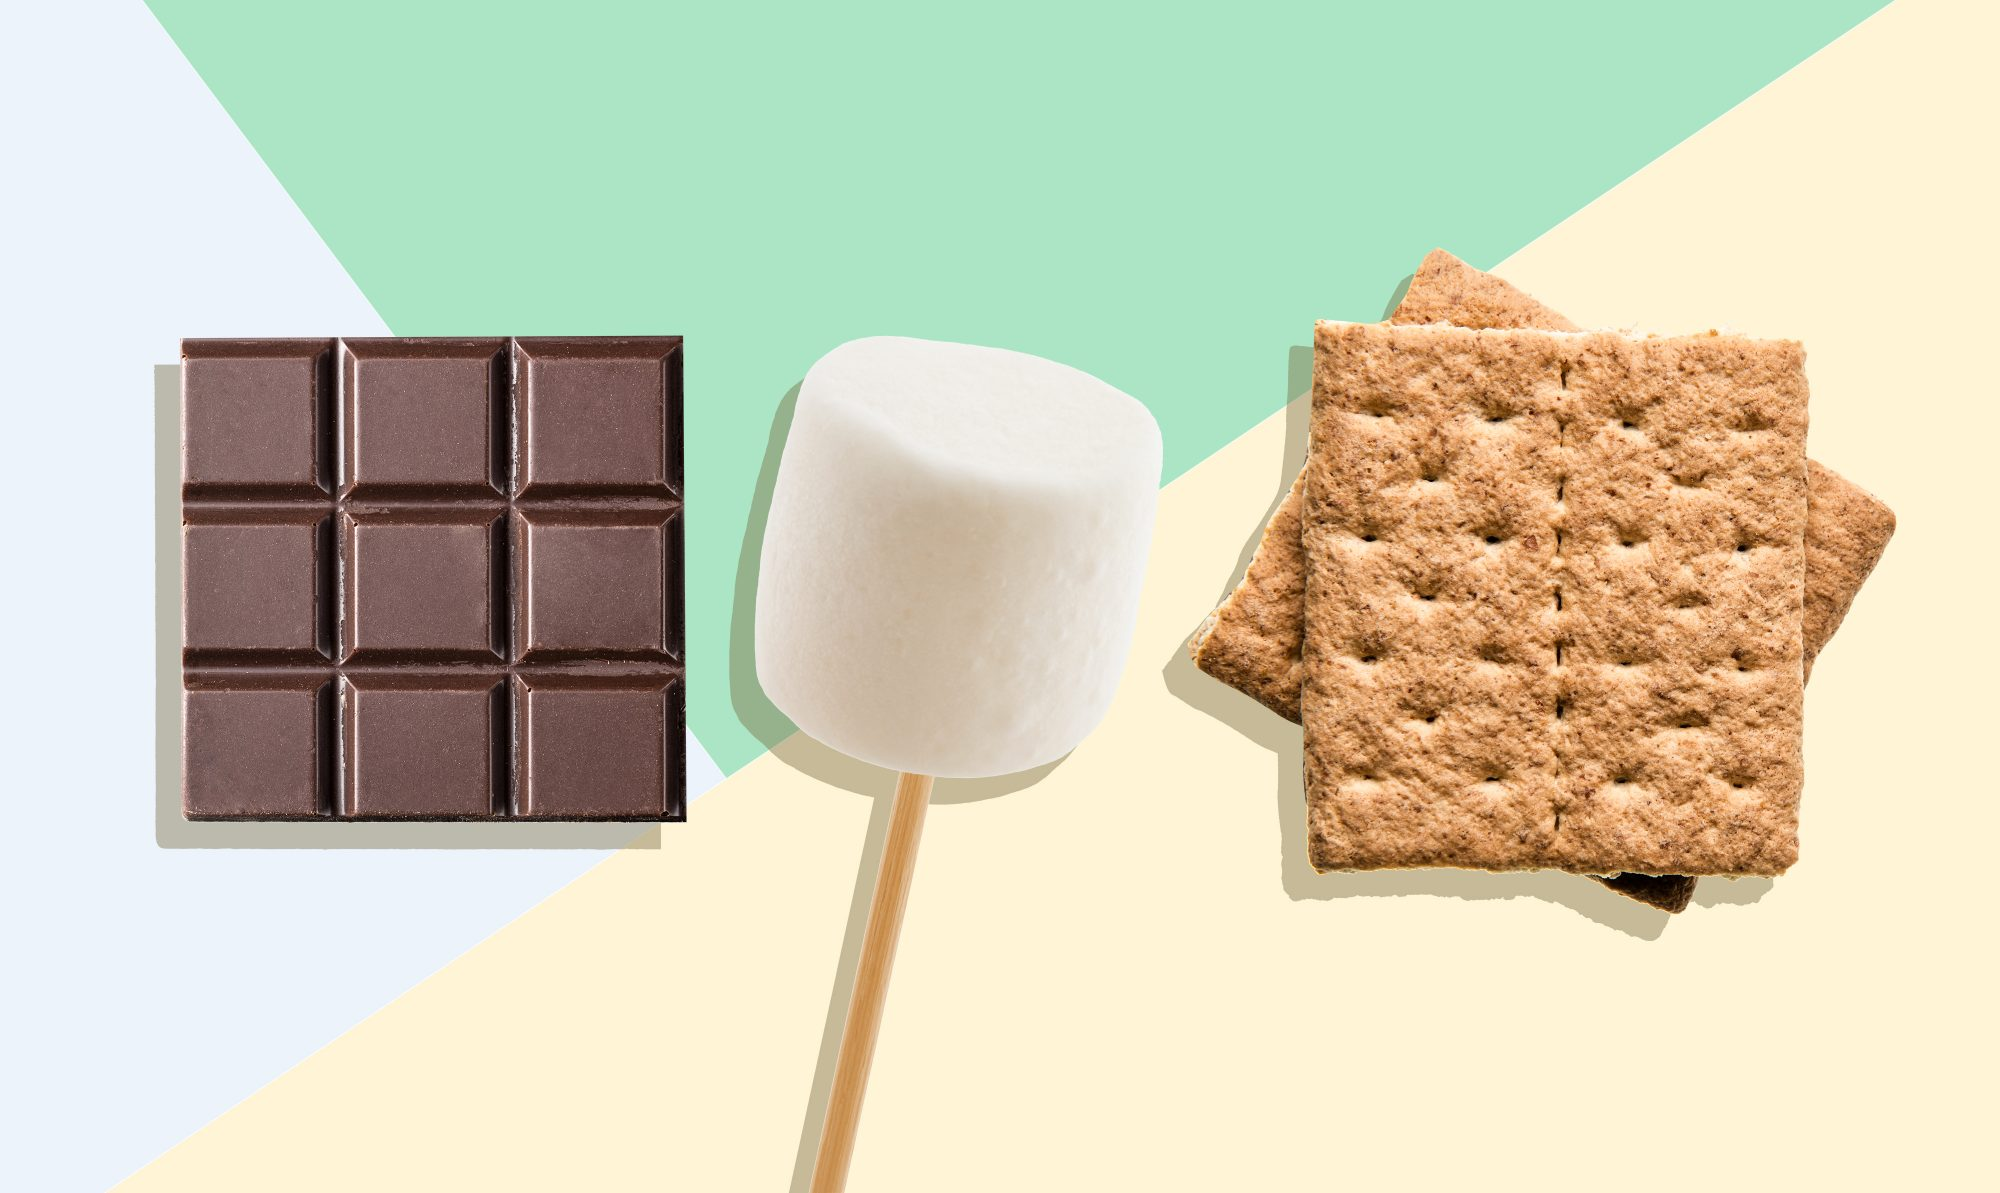 We Found the Secret to Making Perfect S'Mores (Spoiler Alert: It's Super Strange)